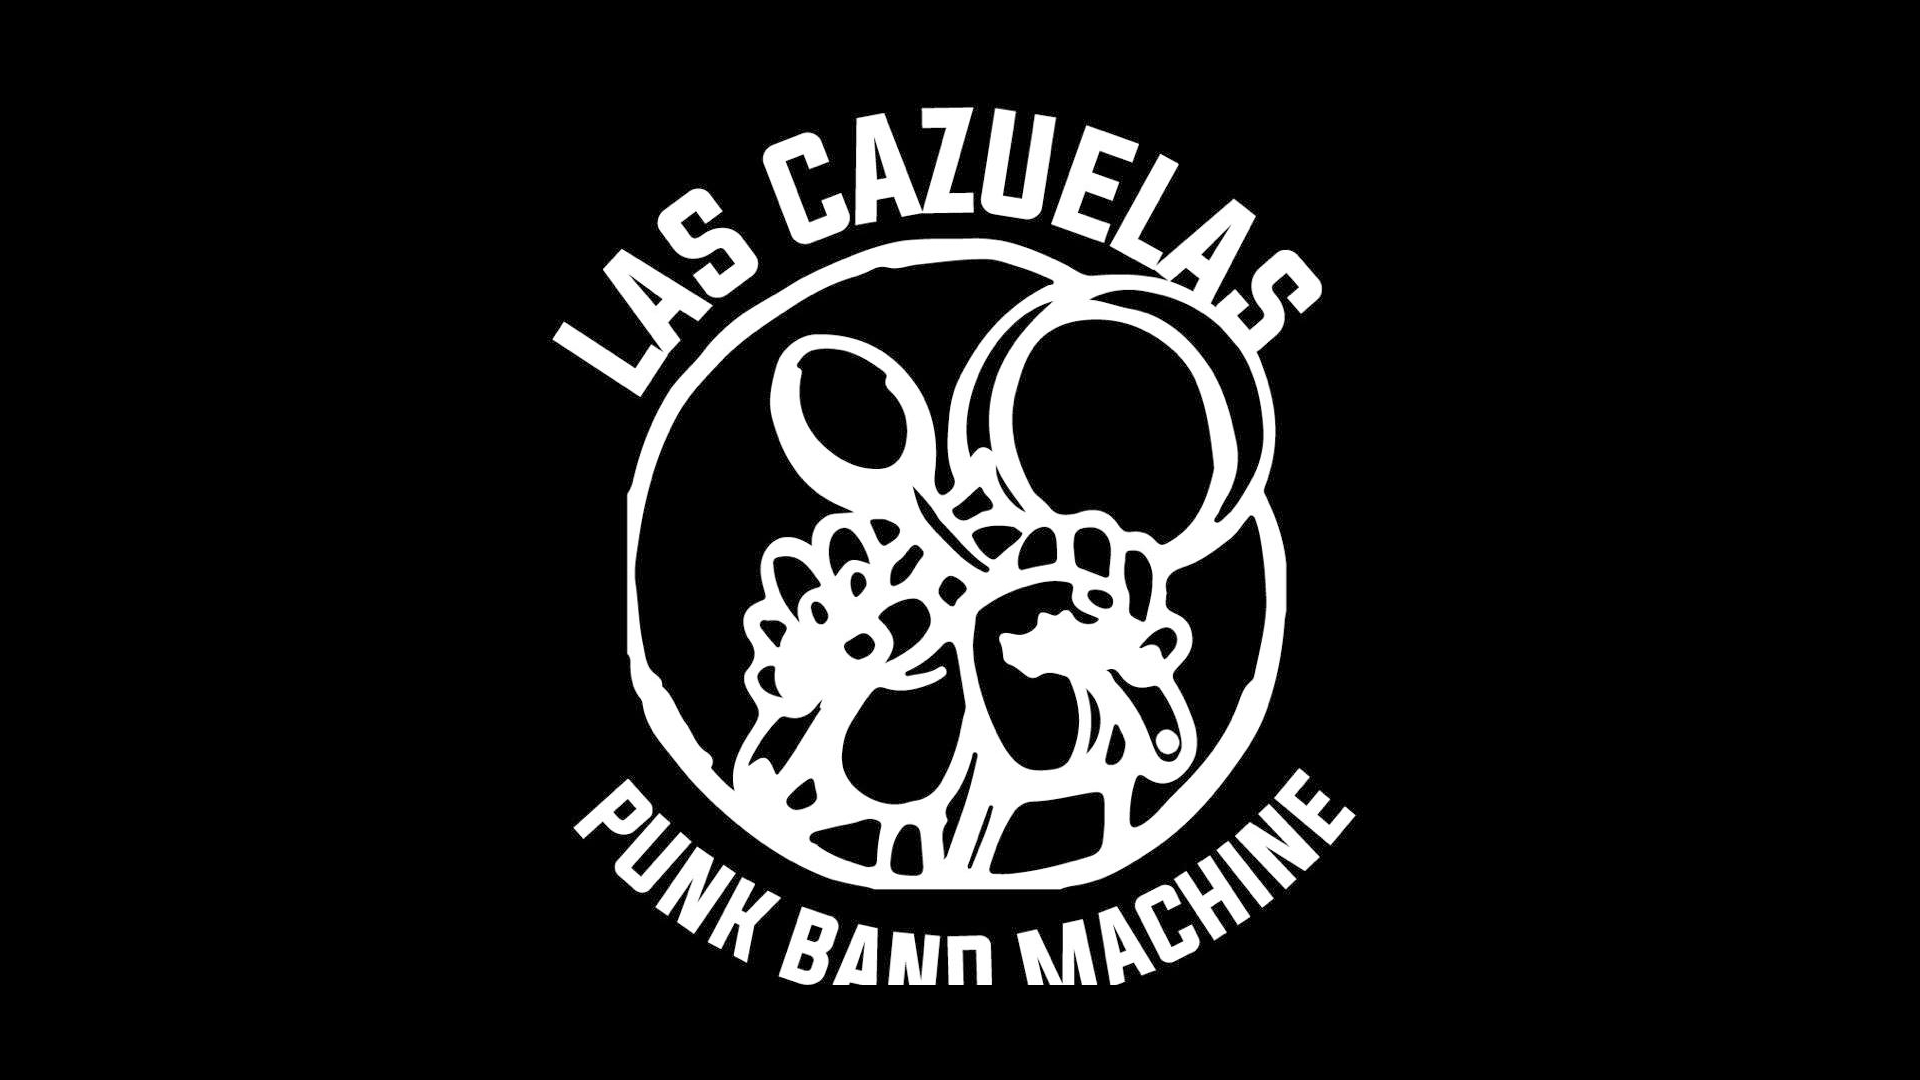 Las Cazuelas Punk Band Machine grabarán DVD